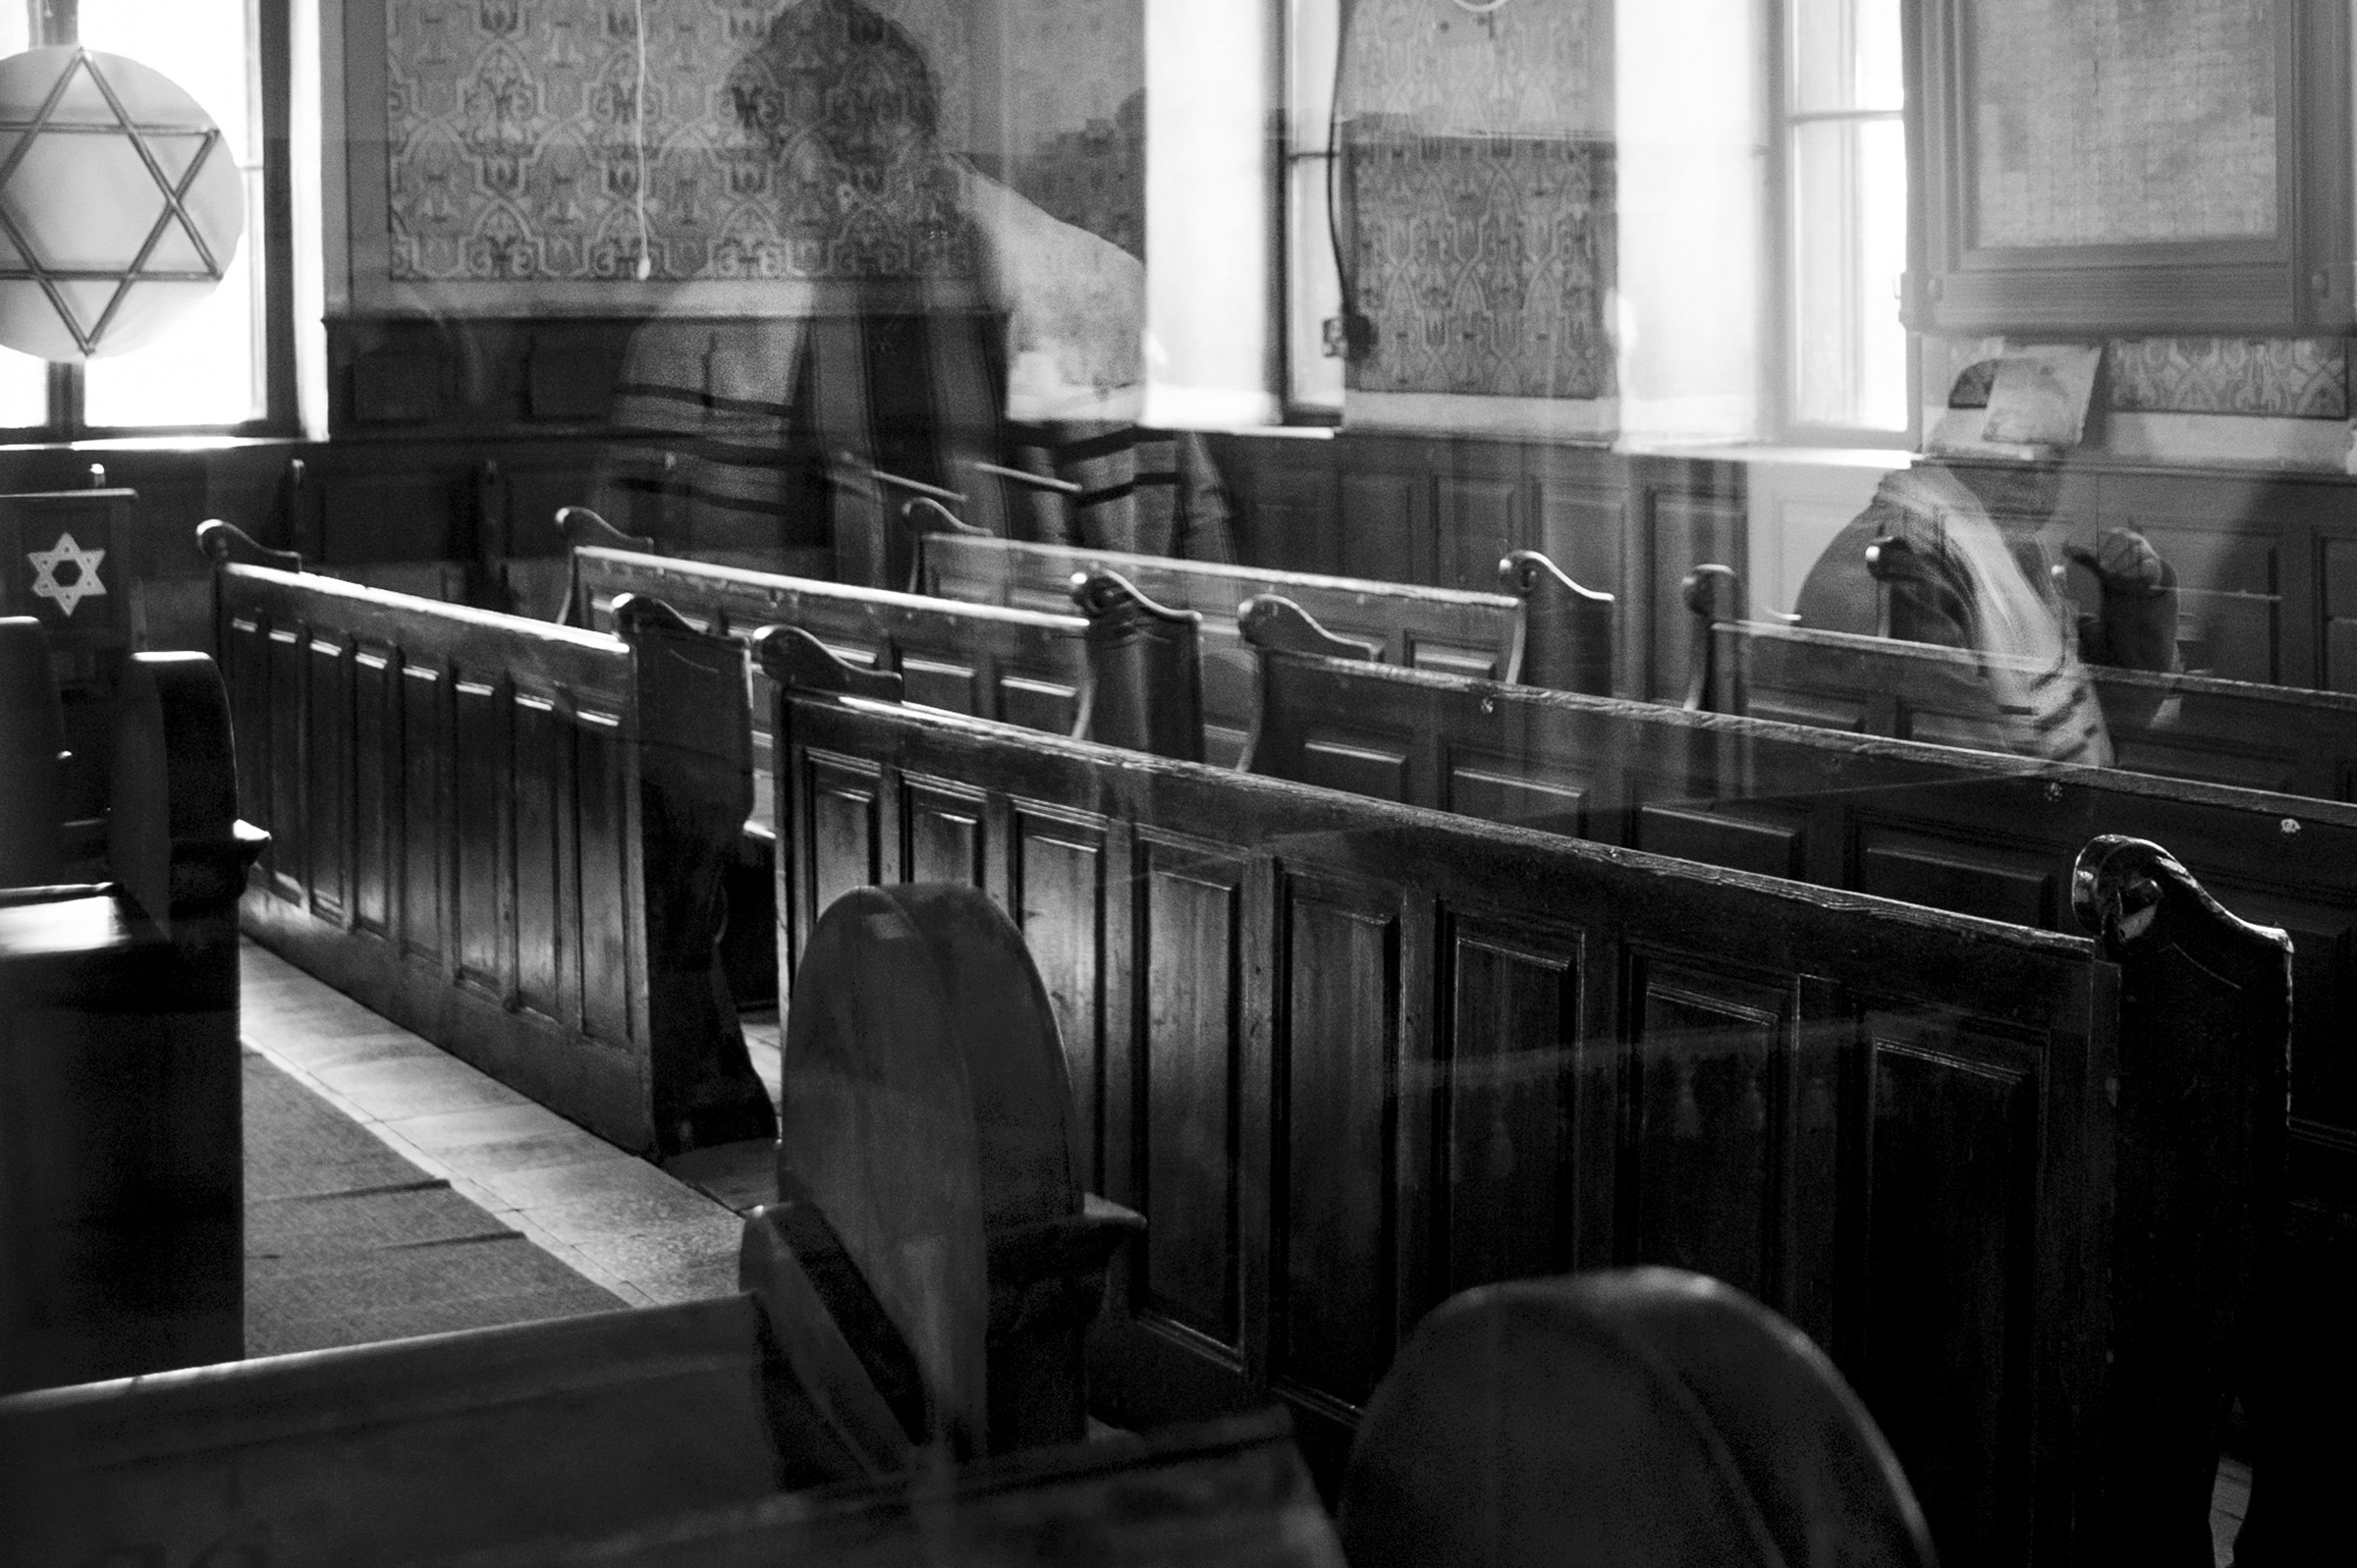 During the weekly Torah reading in Oradea, Romania's last functioning synagogue, reflections fill the empty Sas Chevra Synagogue sanctuary like reminders of a former community; April 11, 2013. Most of the over 30,000 Jews from Oradea at the time of the war were deported to Nazi camps across Europe. (Photo by Daniel Owen/GroundTruth)